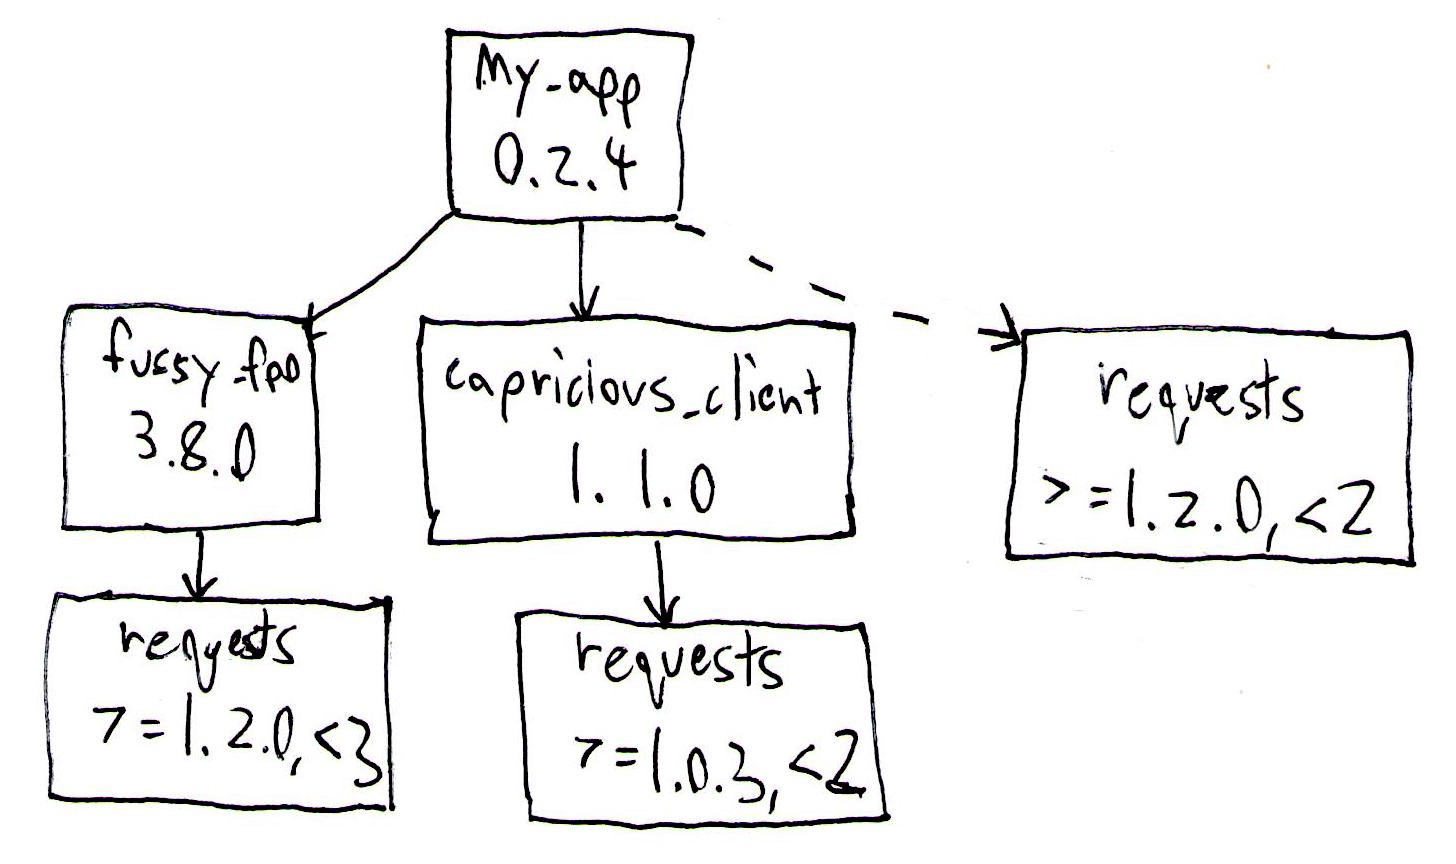 Adding a top-level constraint on the version of requests can satisfy all dependencies.